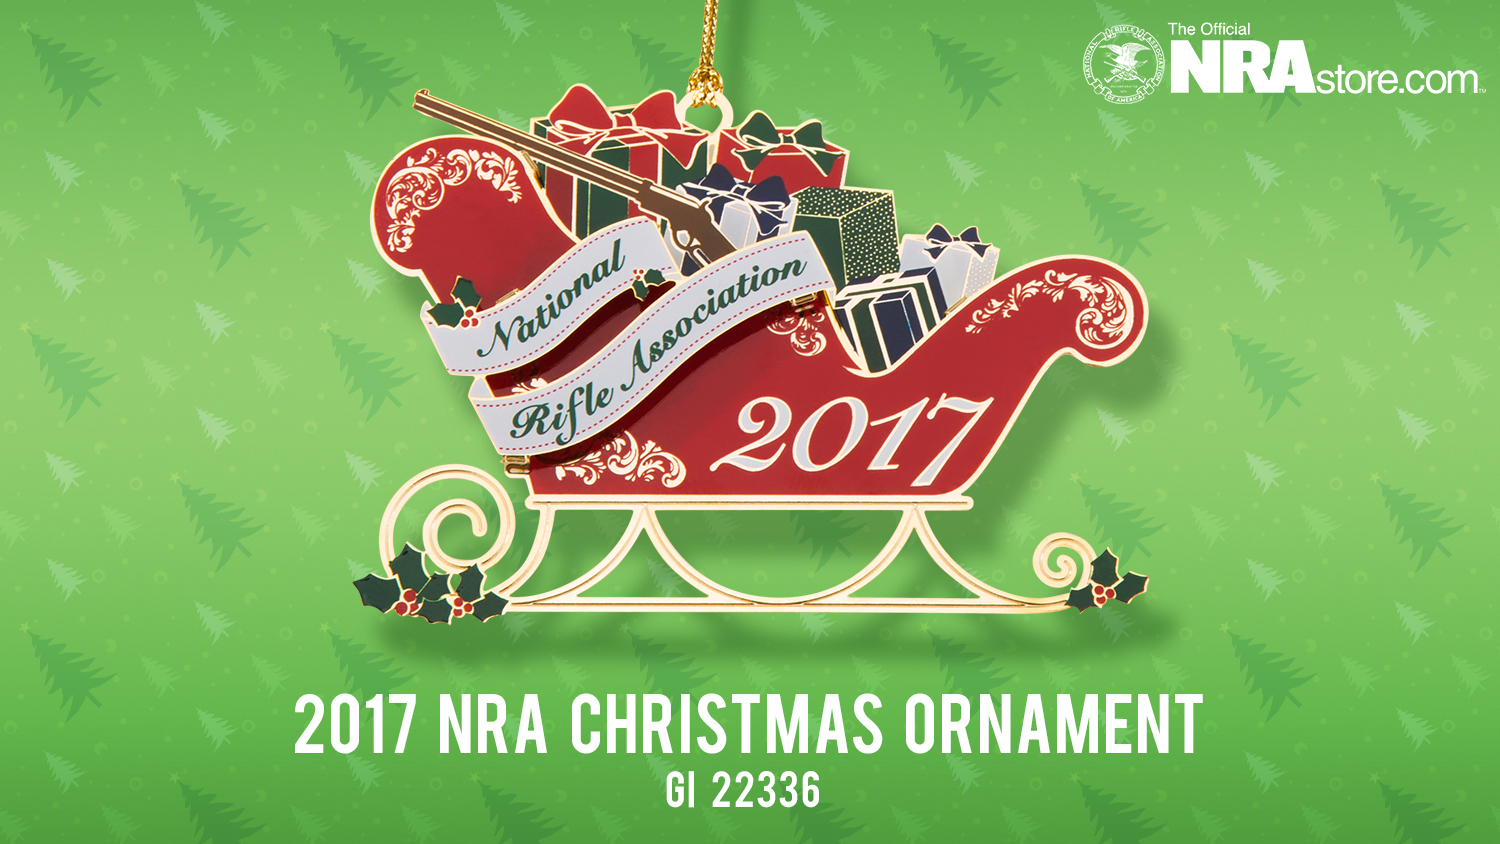 NRAstore Product Highlight: 2017 NRA Christmas Ornament